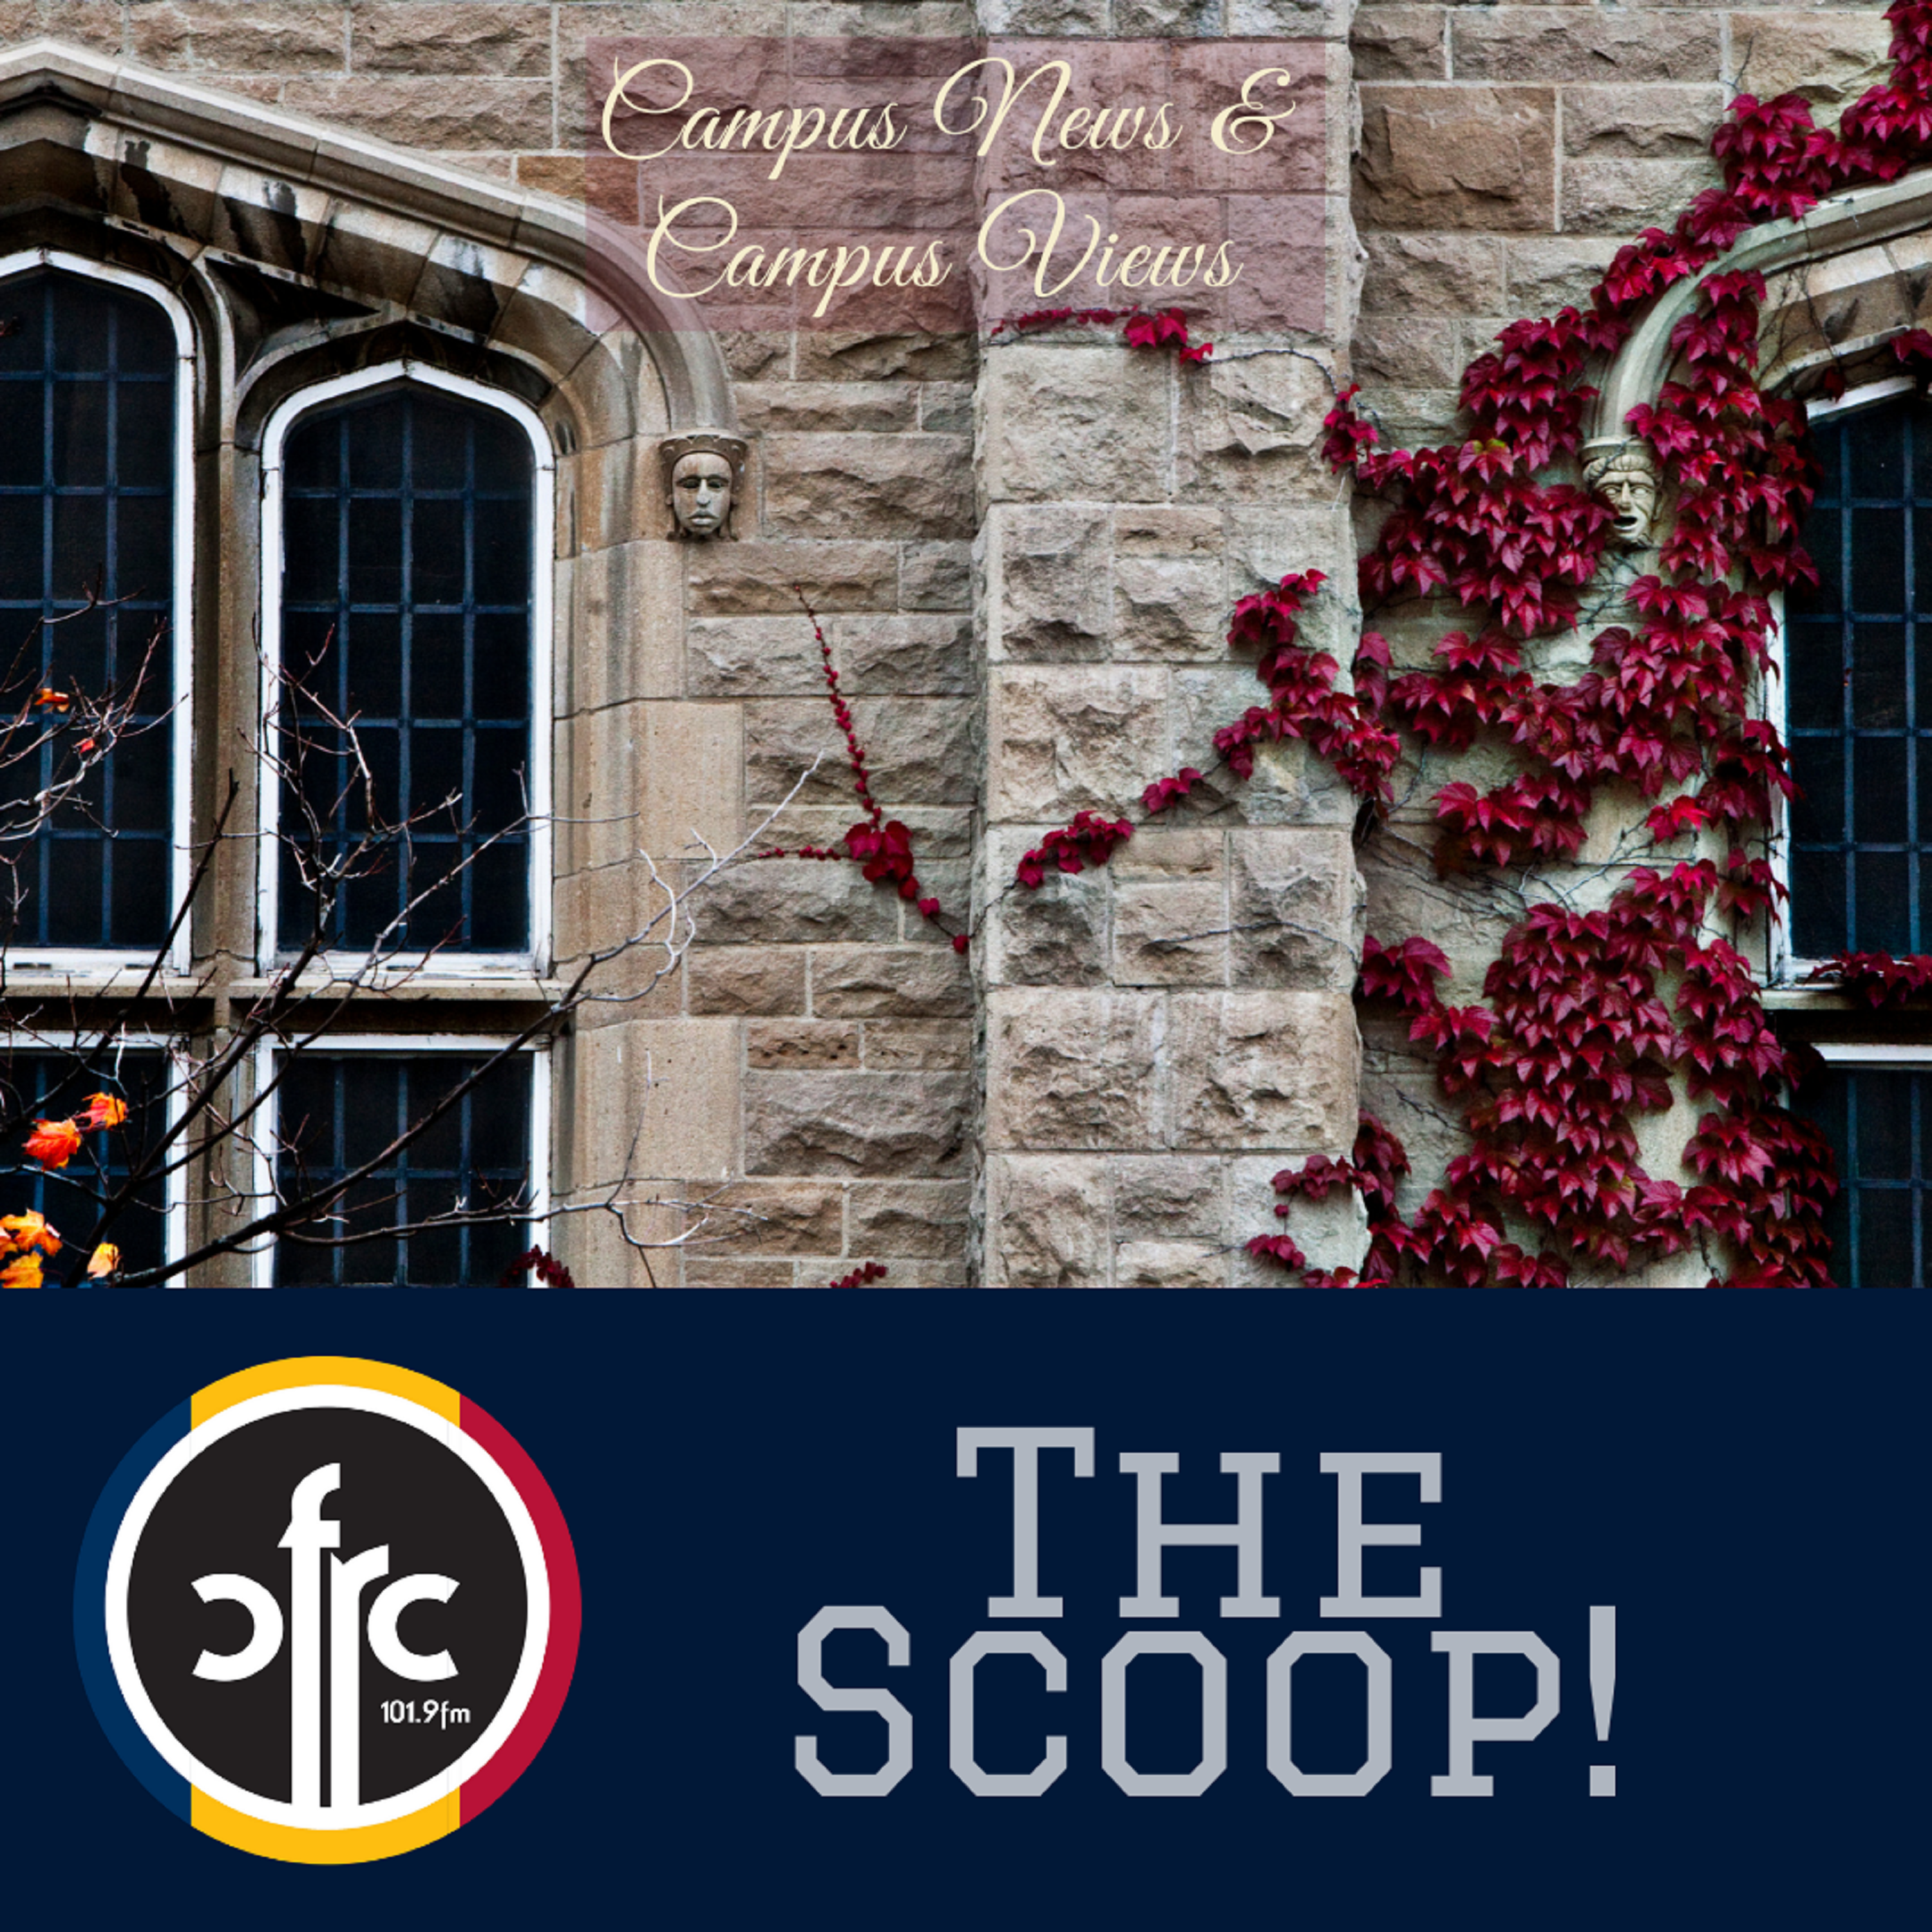 The Scoop! – CFRC Podcast Network